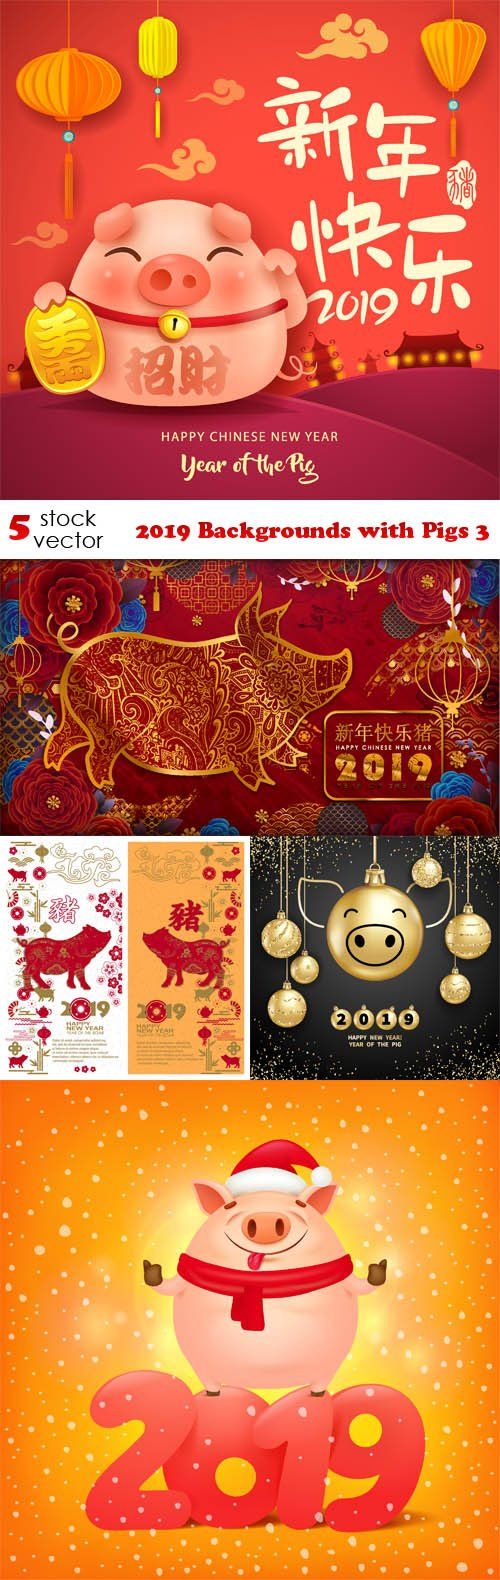 Vectors - 2019 Backgrounds with Pigs 3